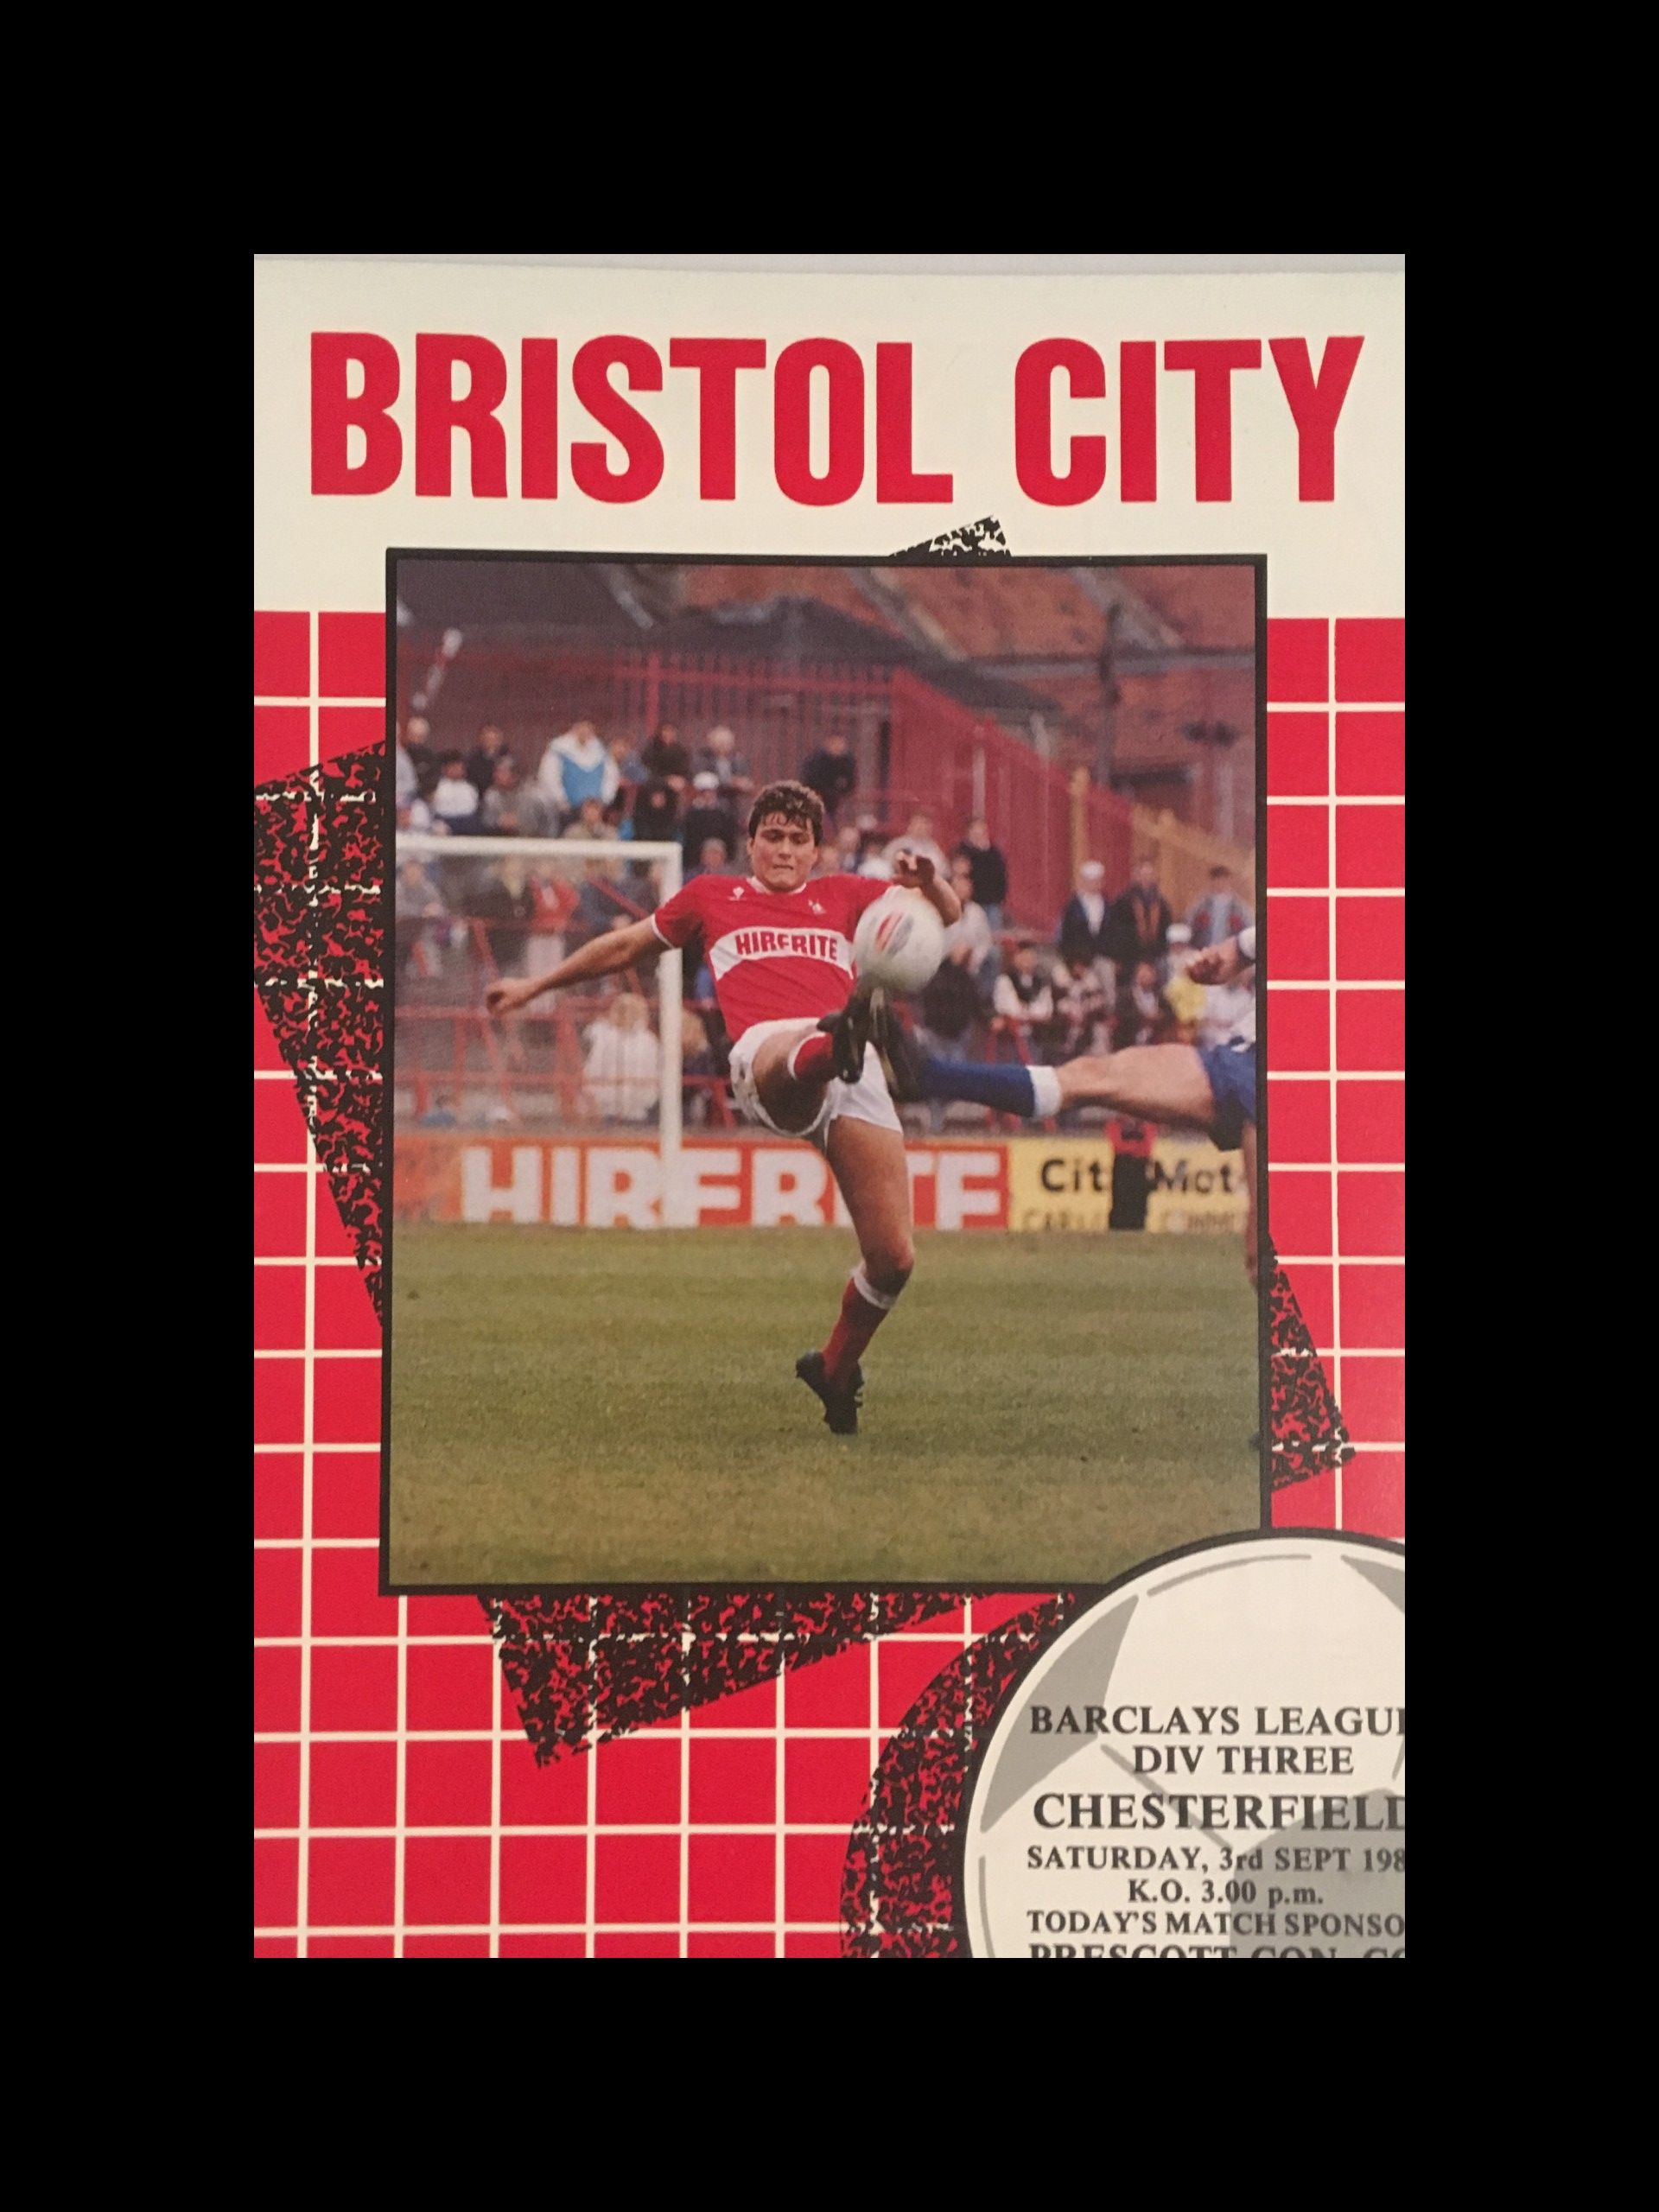 Bristol City v Chesterfield 03-09-1988 Programme